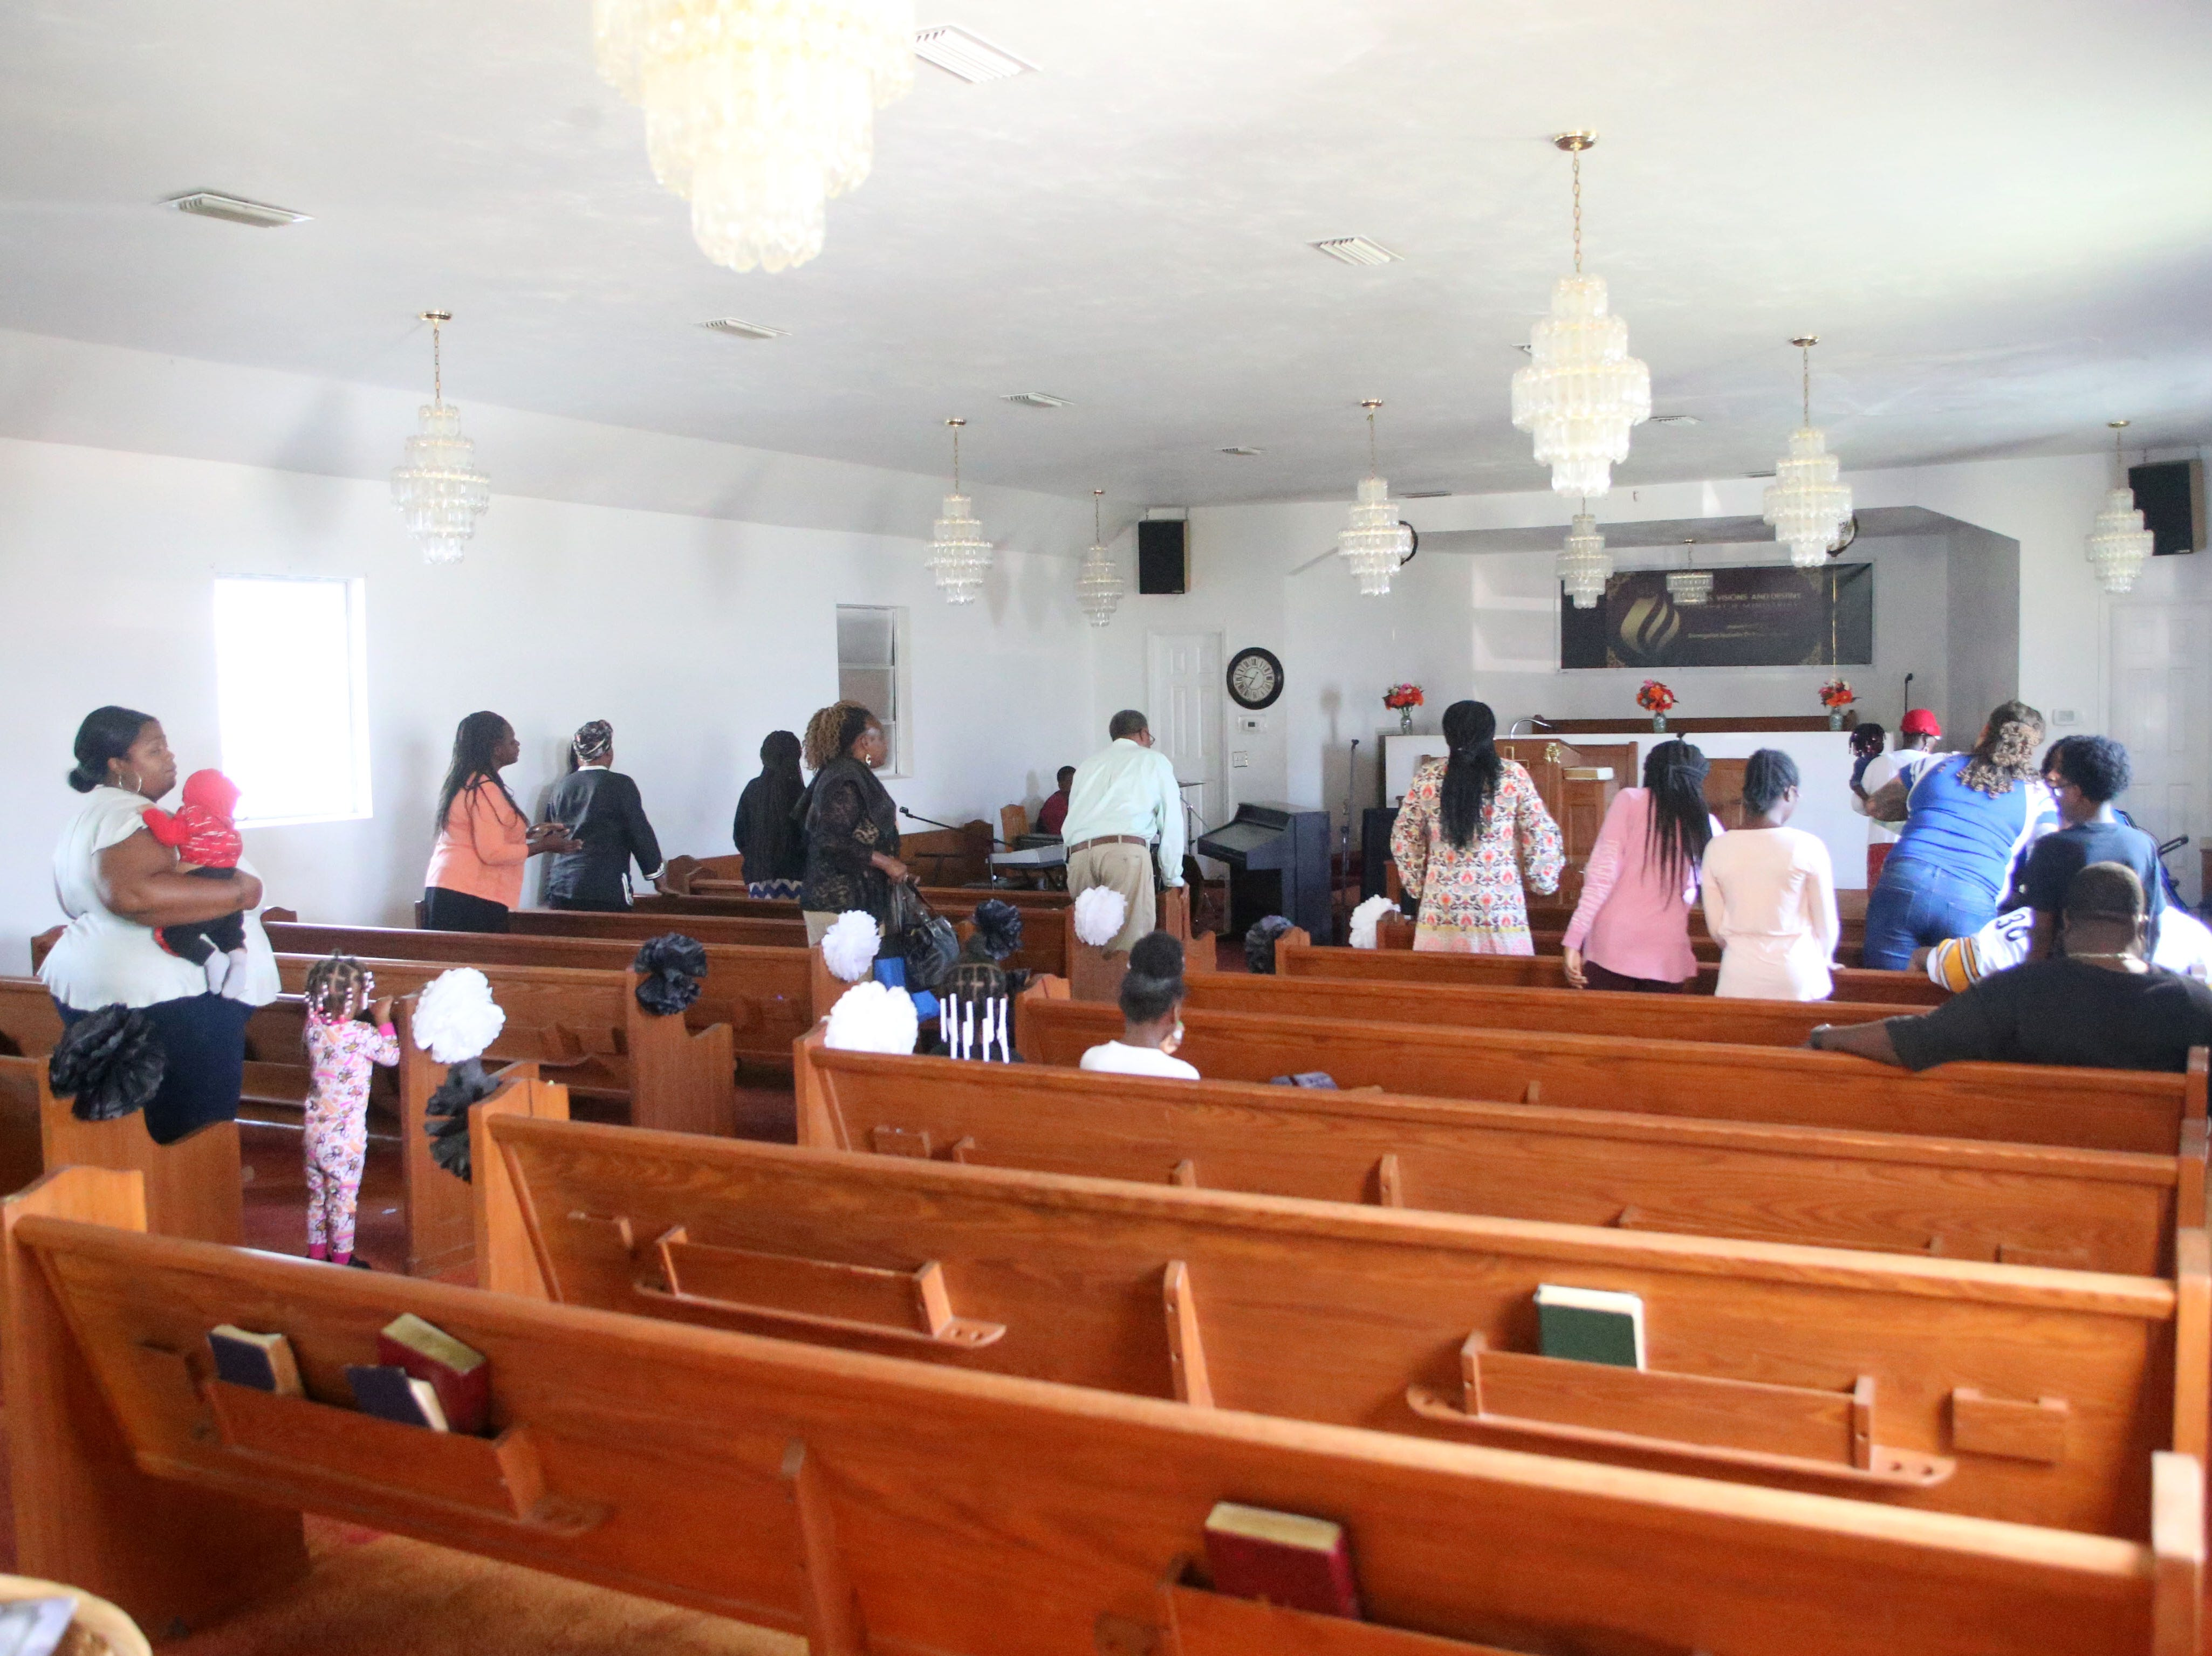 Members of Dream, Vision, and Destiny (DVD) Ministry in Gretna, Fla., worship and sing songs of praise on Sunday Oct. 14, 2018, after Hurricane Michael hits the Florida panhandle.